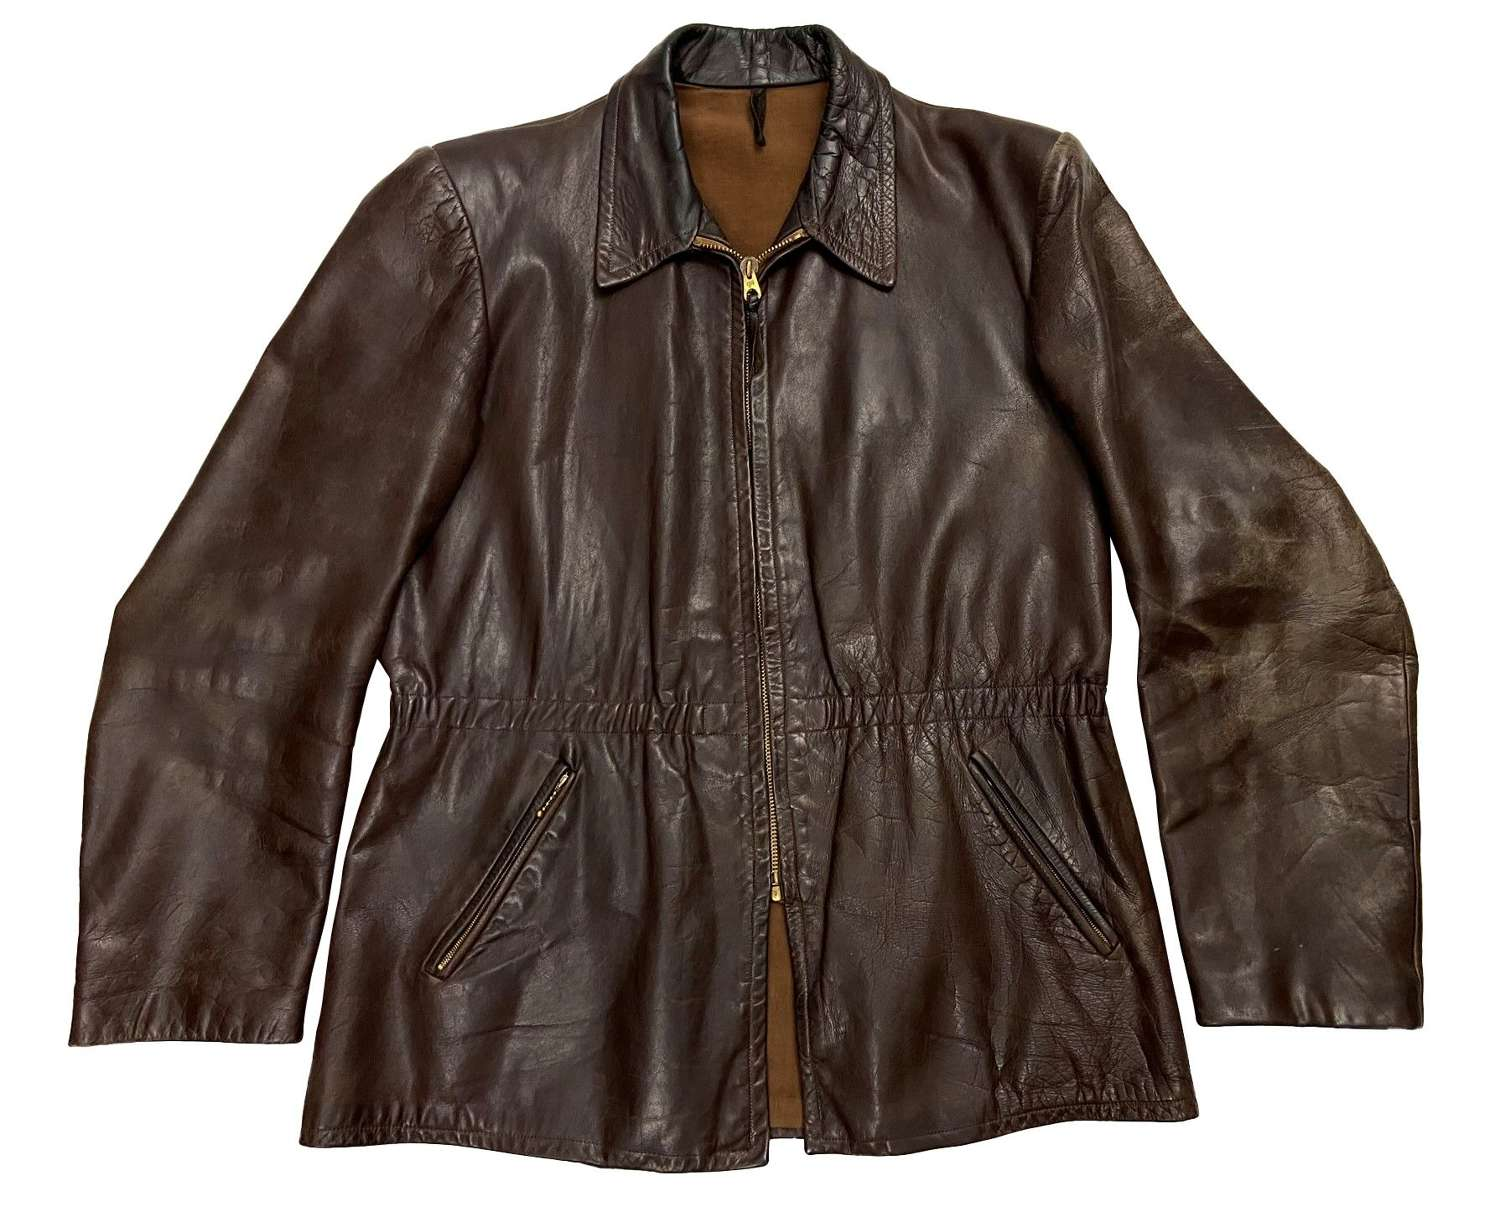 Original 1950s German Brown Leather Jacket